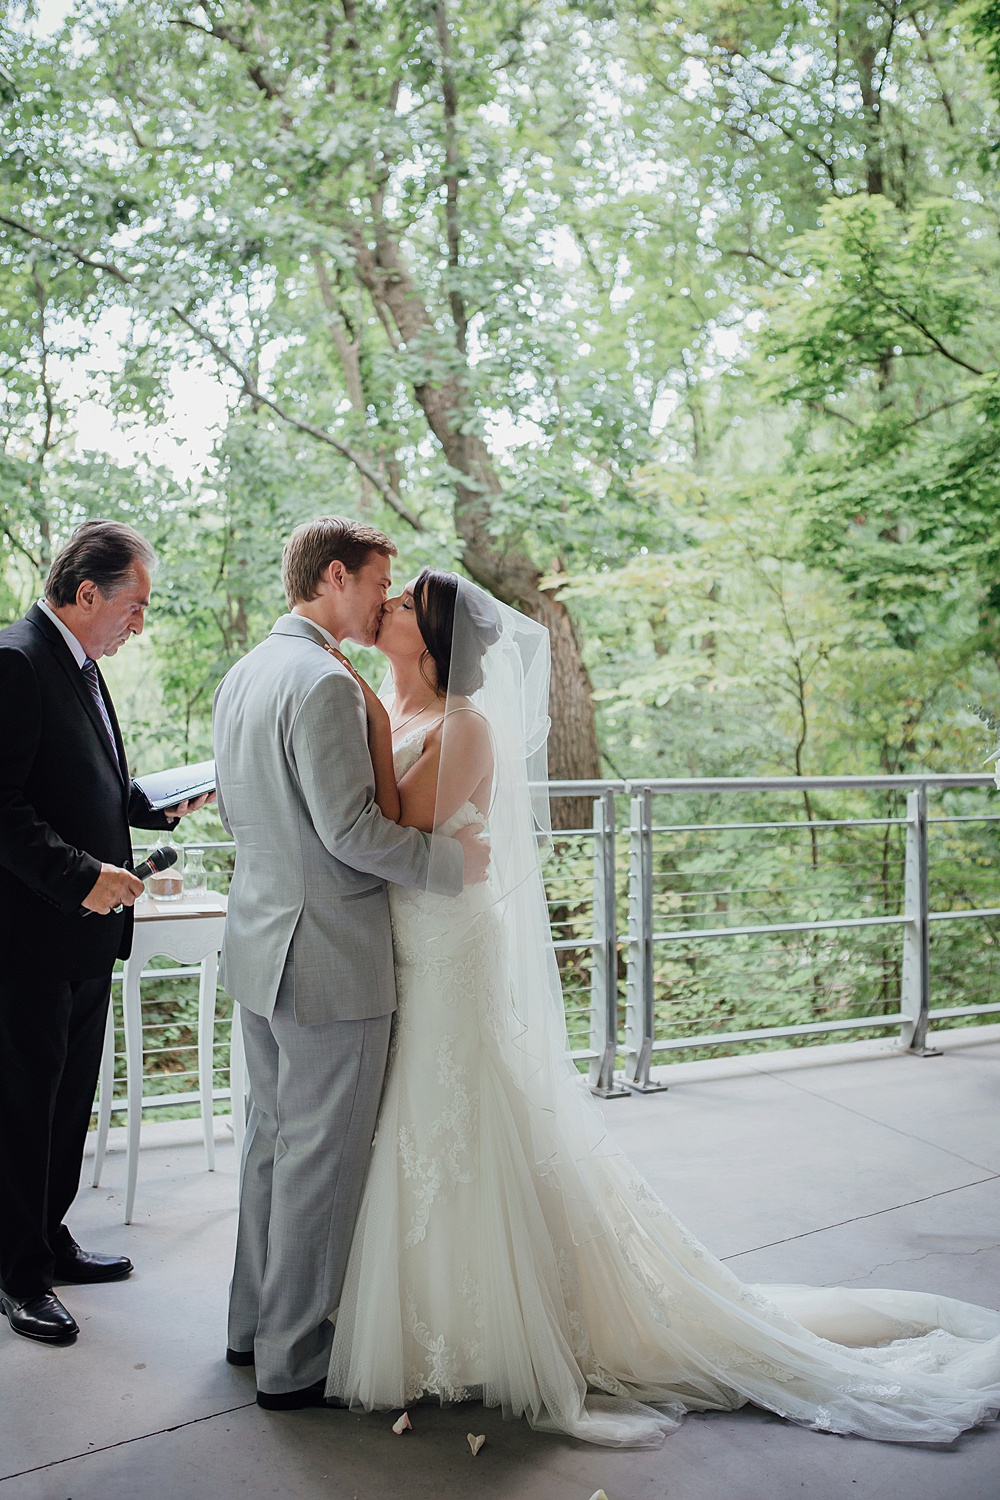 Bissell_Treehouse_Wedding_photography102.jpg